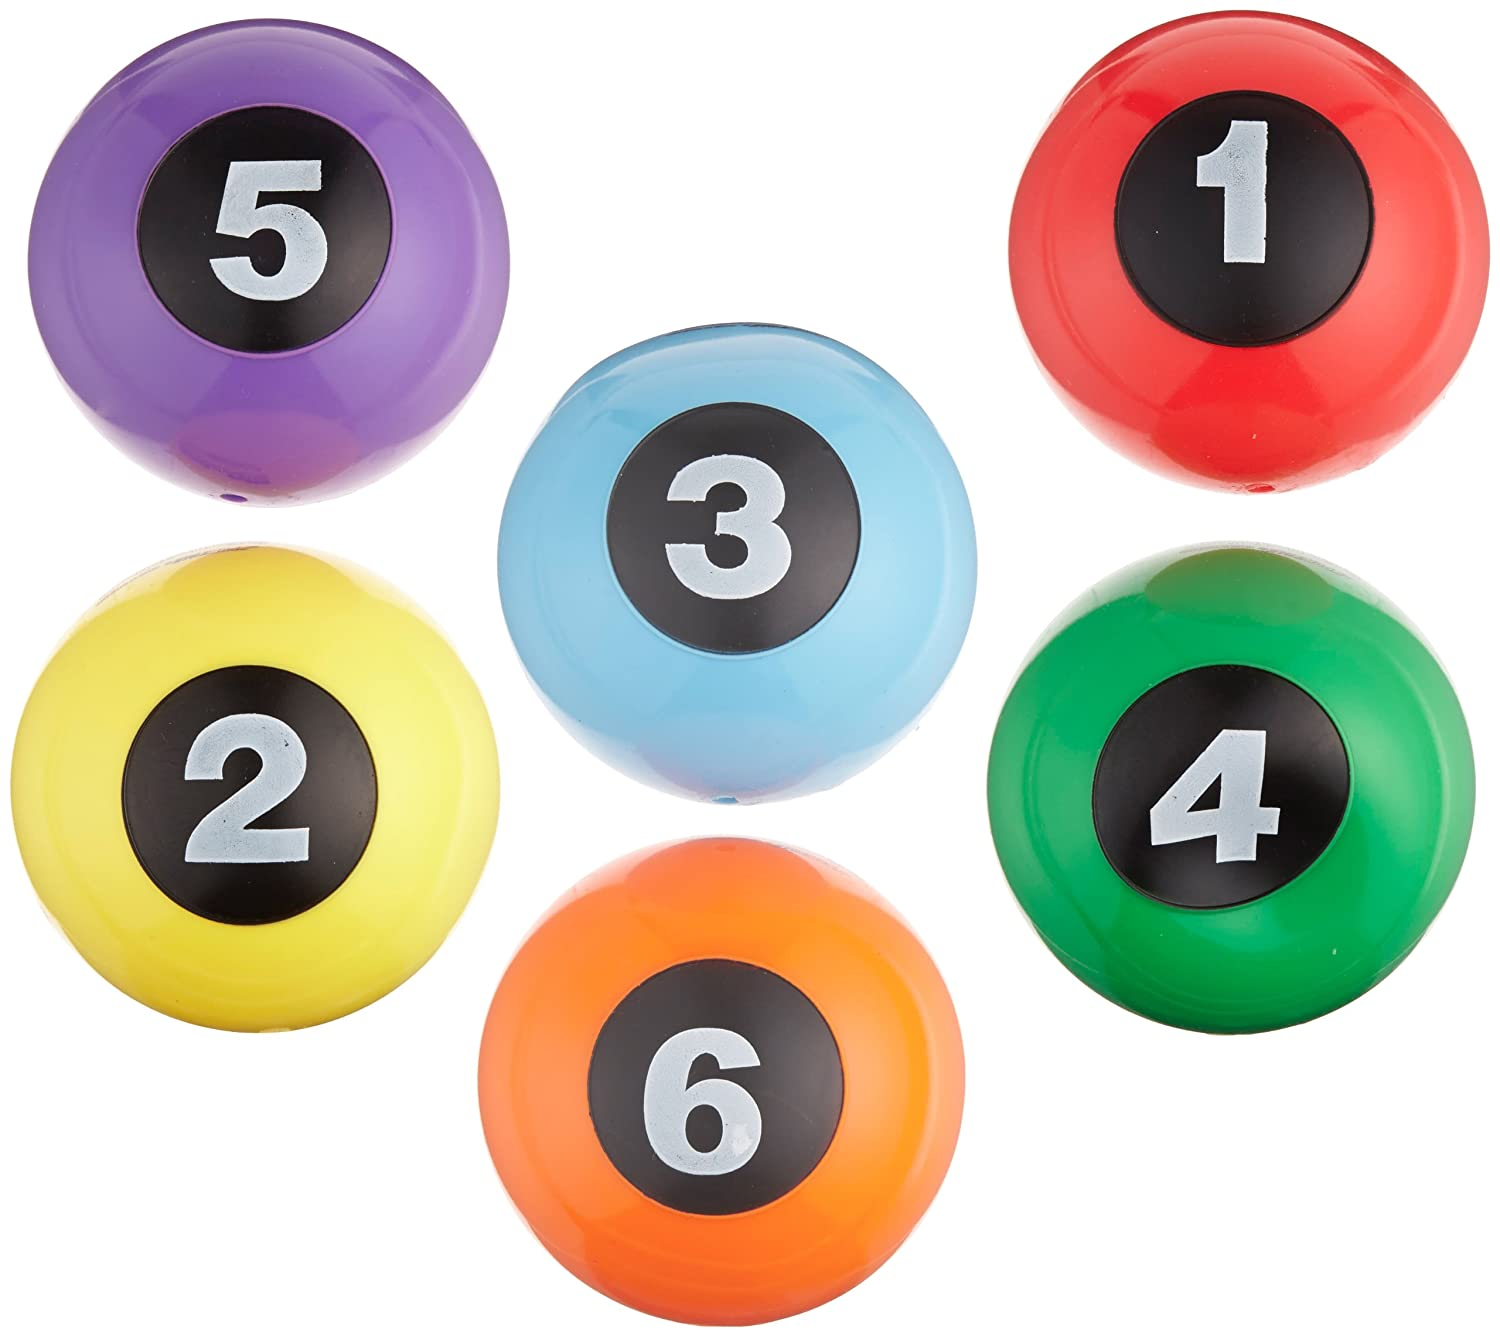 2-5//8 x 5-1//4 Inches Sportime Numbered Step-N-Stones Set of 6